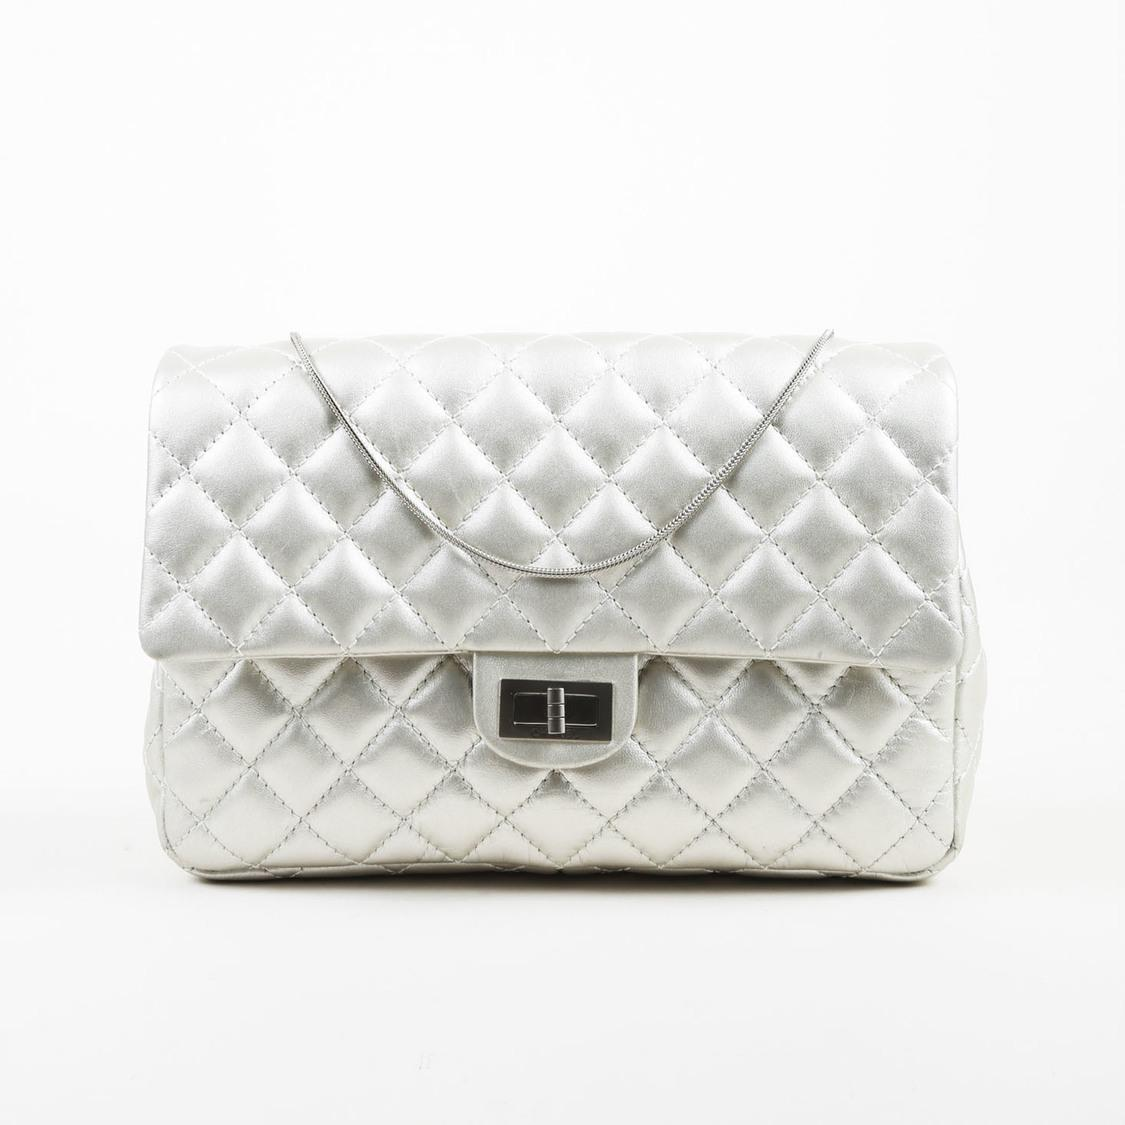 9d21e8b3b1b04b Lyst - Chanel Silver Quilted Calfskin Leather